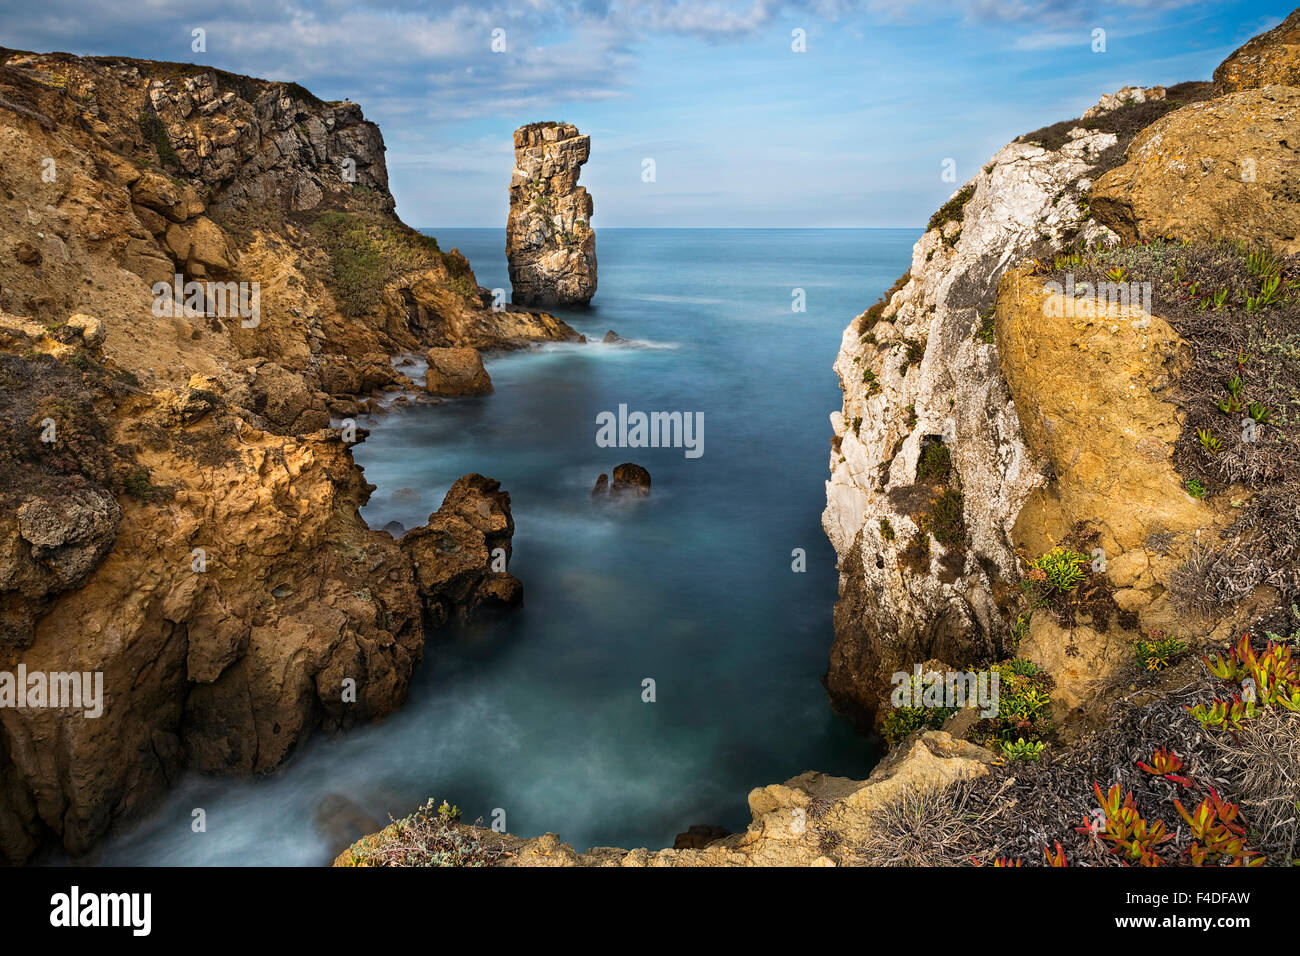 View of the the sea and rocks in Peniche, Portugal - Stock Image